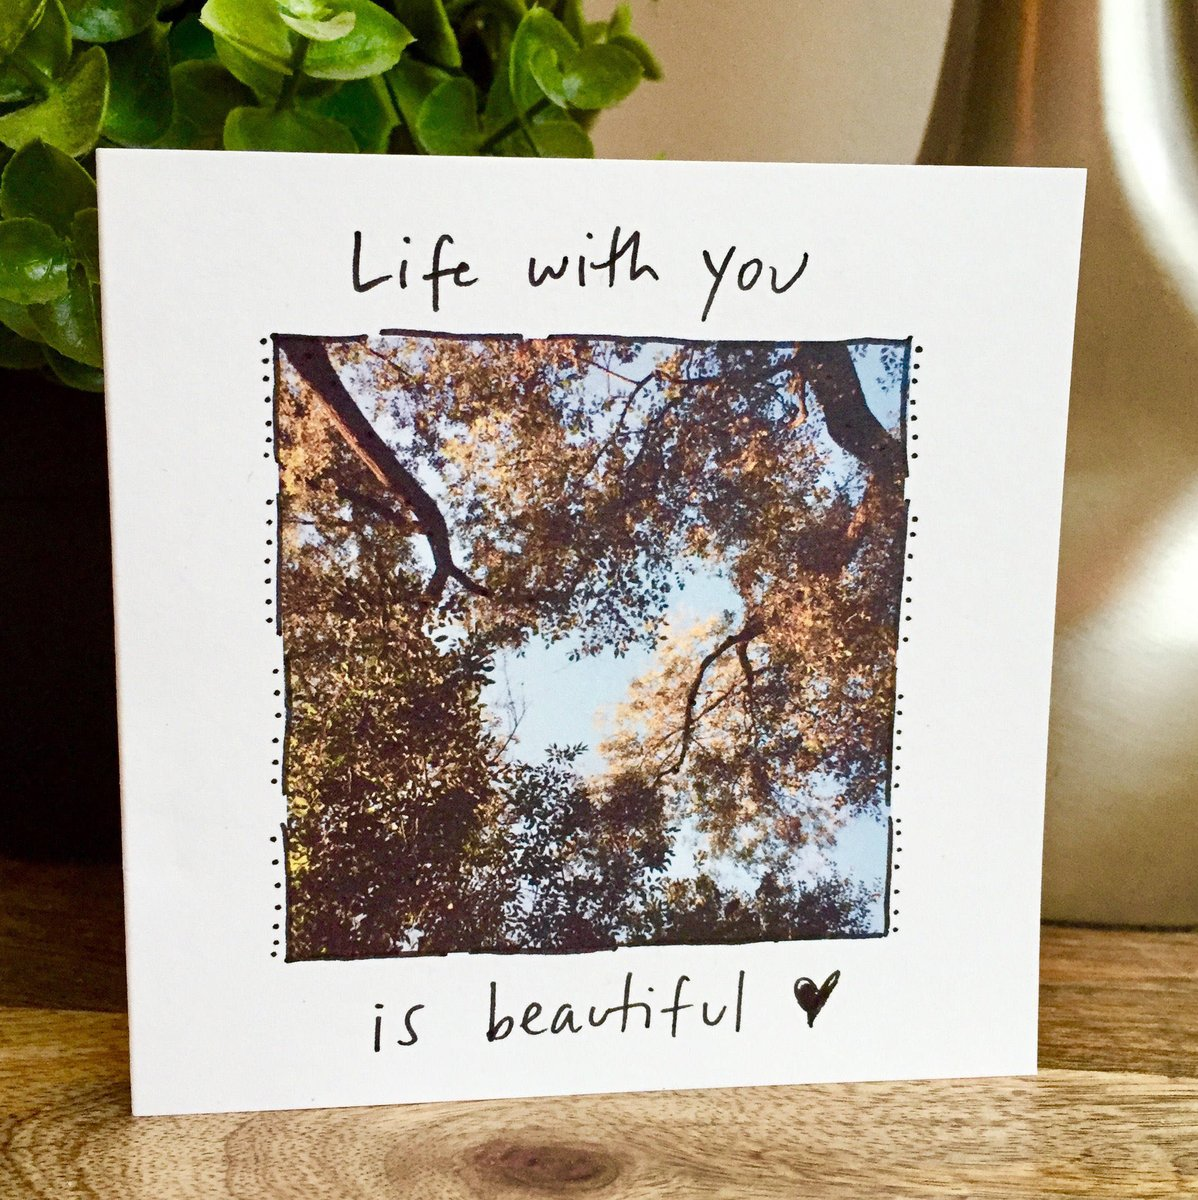 Excited to share the latest addition to my #etsy shop: Life is beautiful card, nature lover card, One Year Anniversary Card for husband, Paper Anniversary, anniversary card wife, 1st anniversary https://t.co/HKLLxxu81a #papergoods #naturelovercard #treecard #lifeisbeau https://t.co/1FGmpK7omj